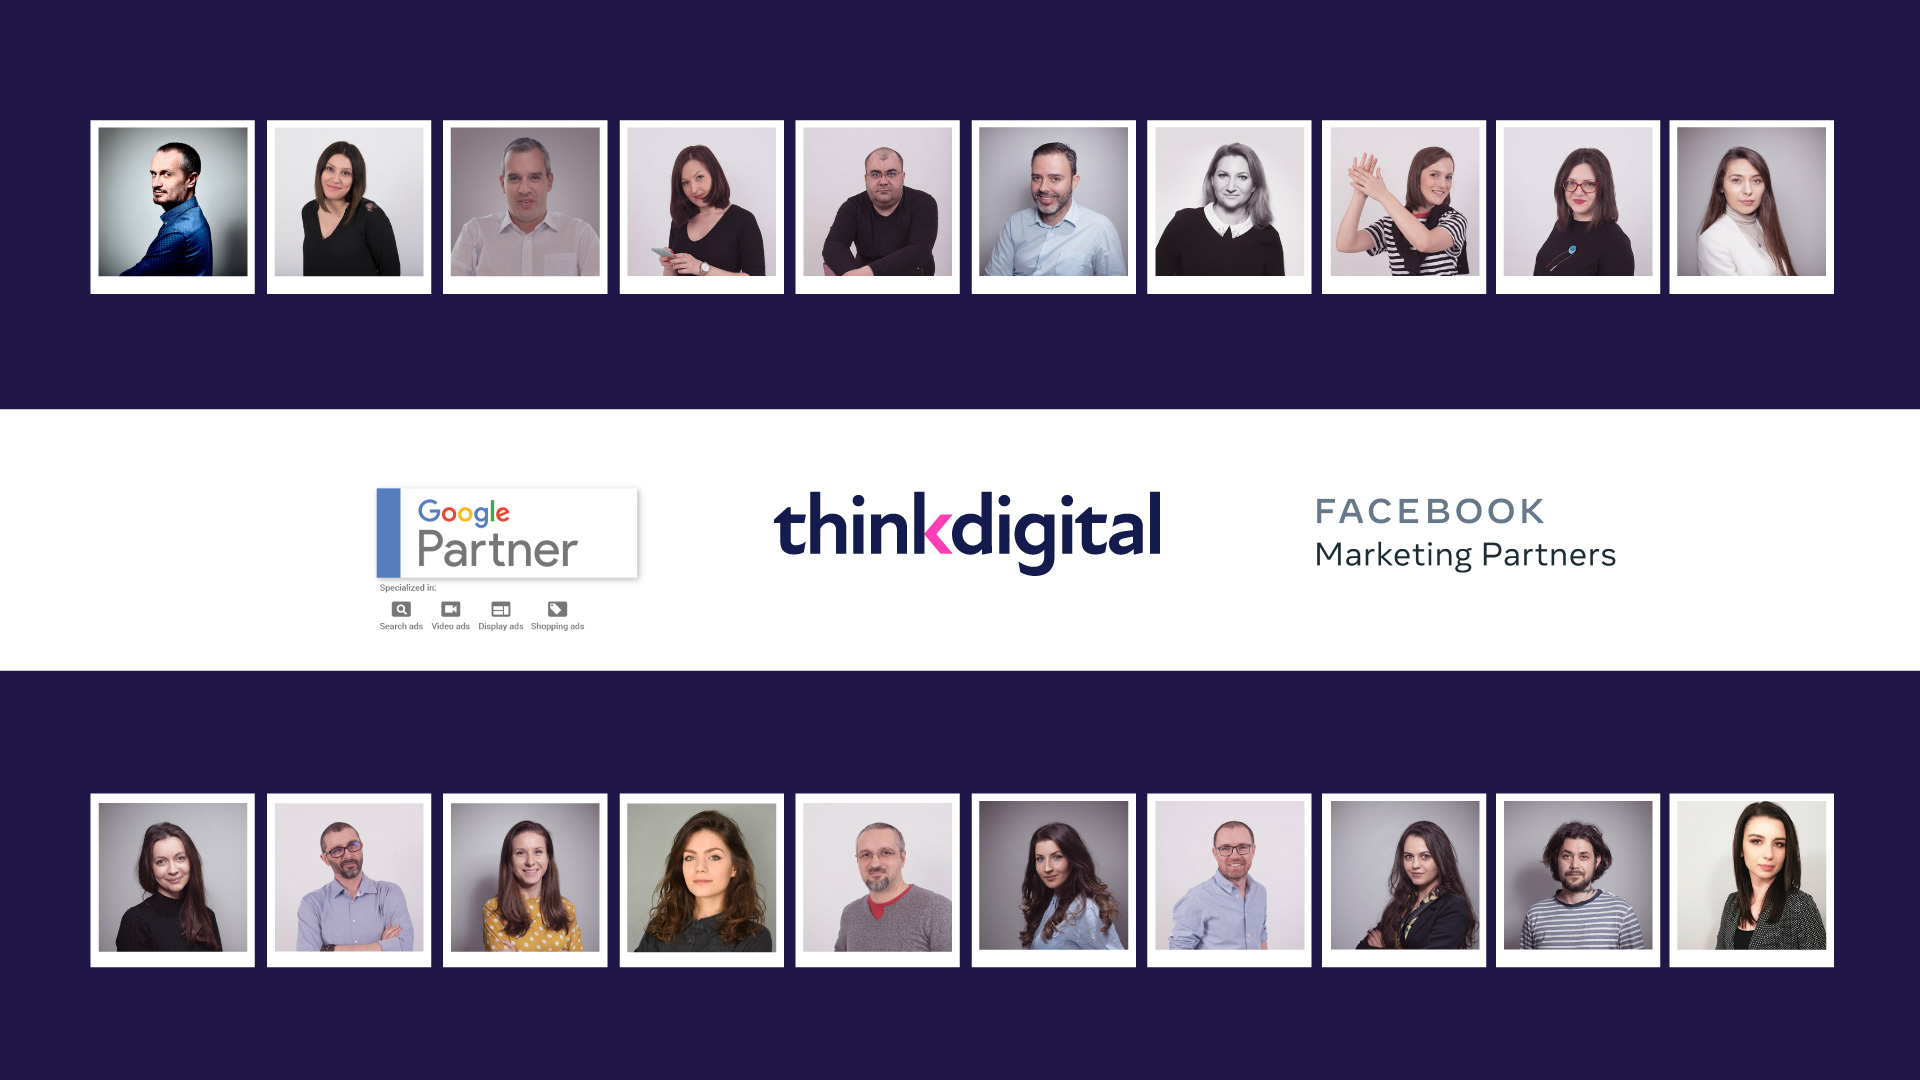 Thinkdigital is now Google Partner and Facebook Marketing Partner. What's next?